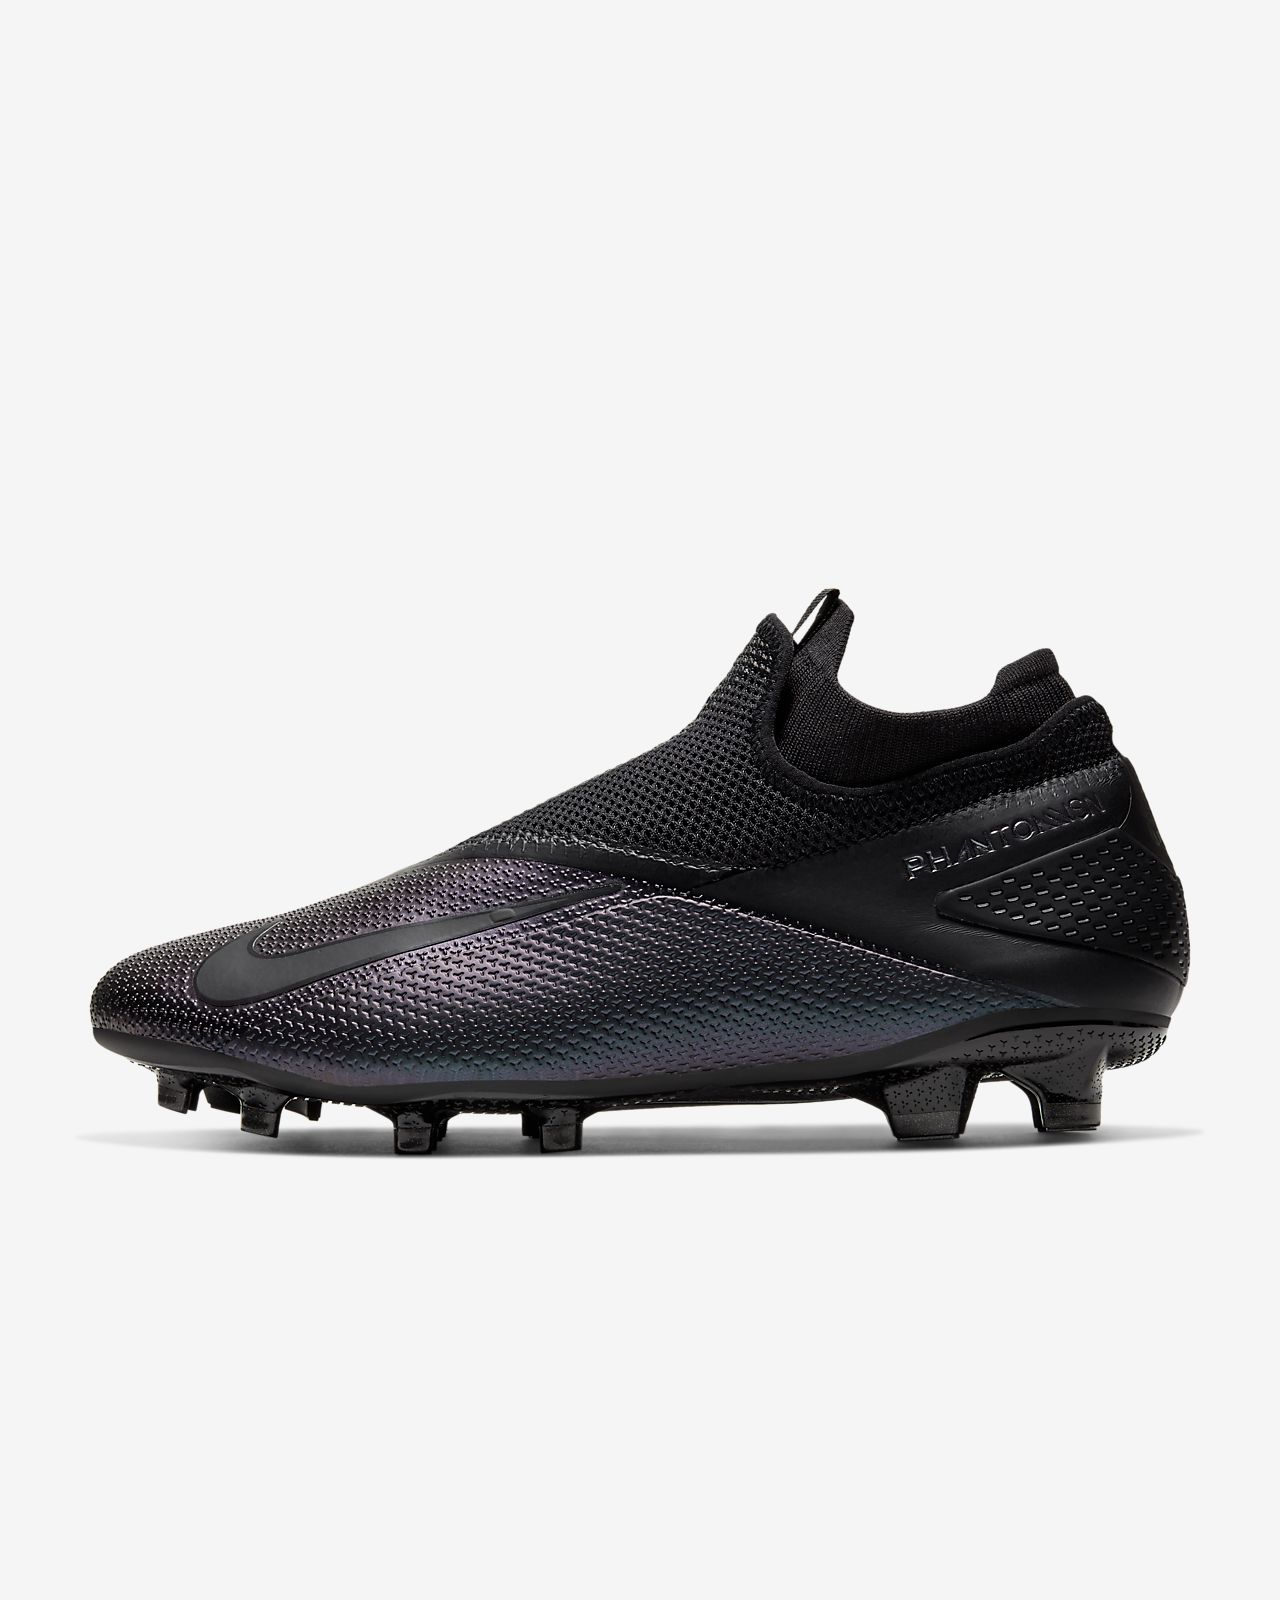 Nike Phantom Vision 2 Elite Dynamic Fit FG fotballsko til